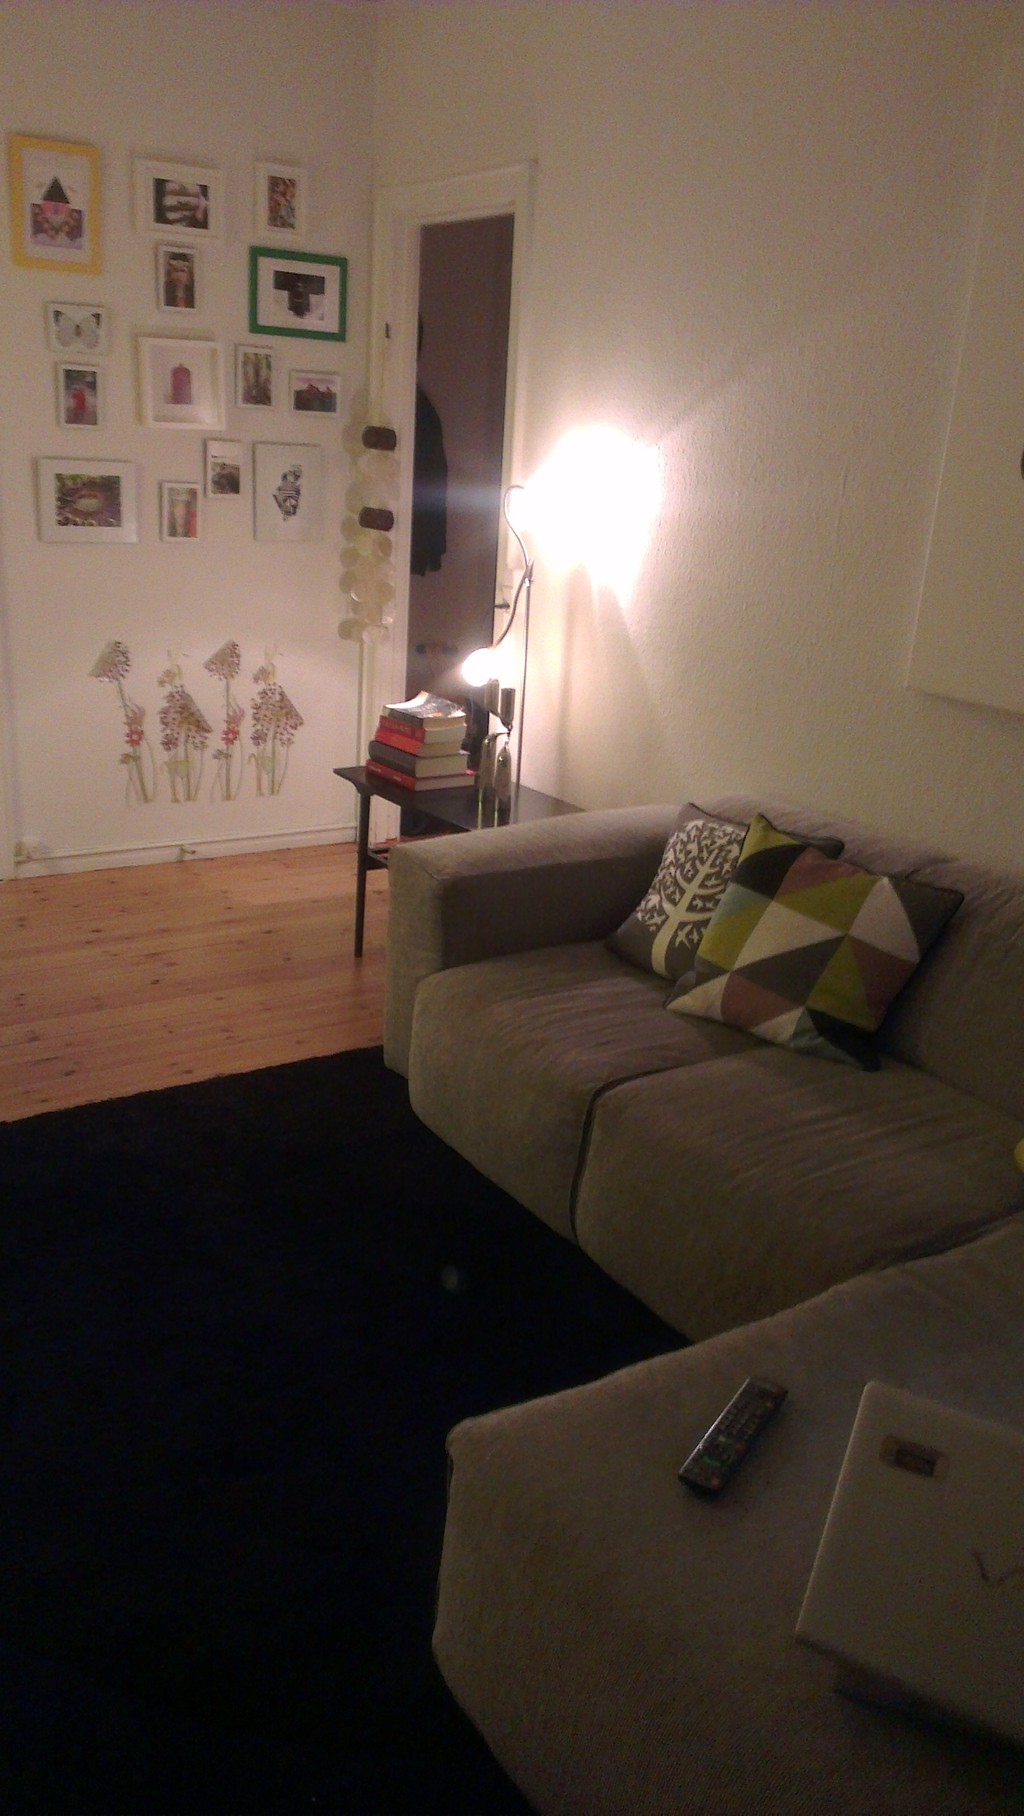 2 Beedroom Appartment With Furniture 20 Min From